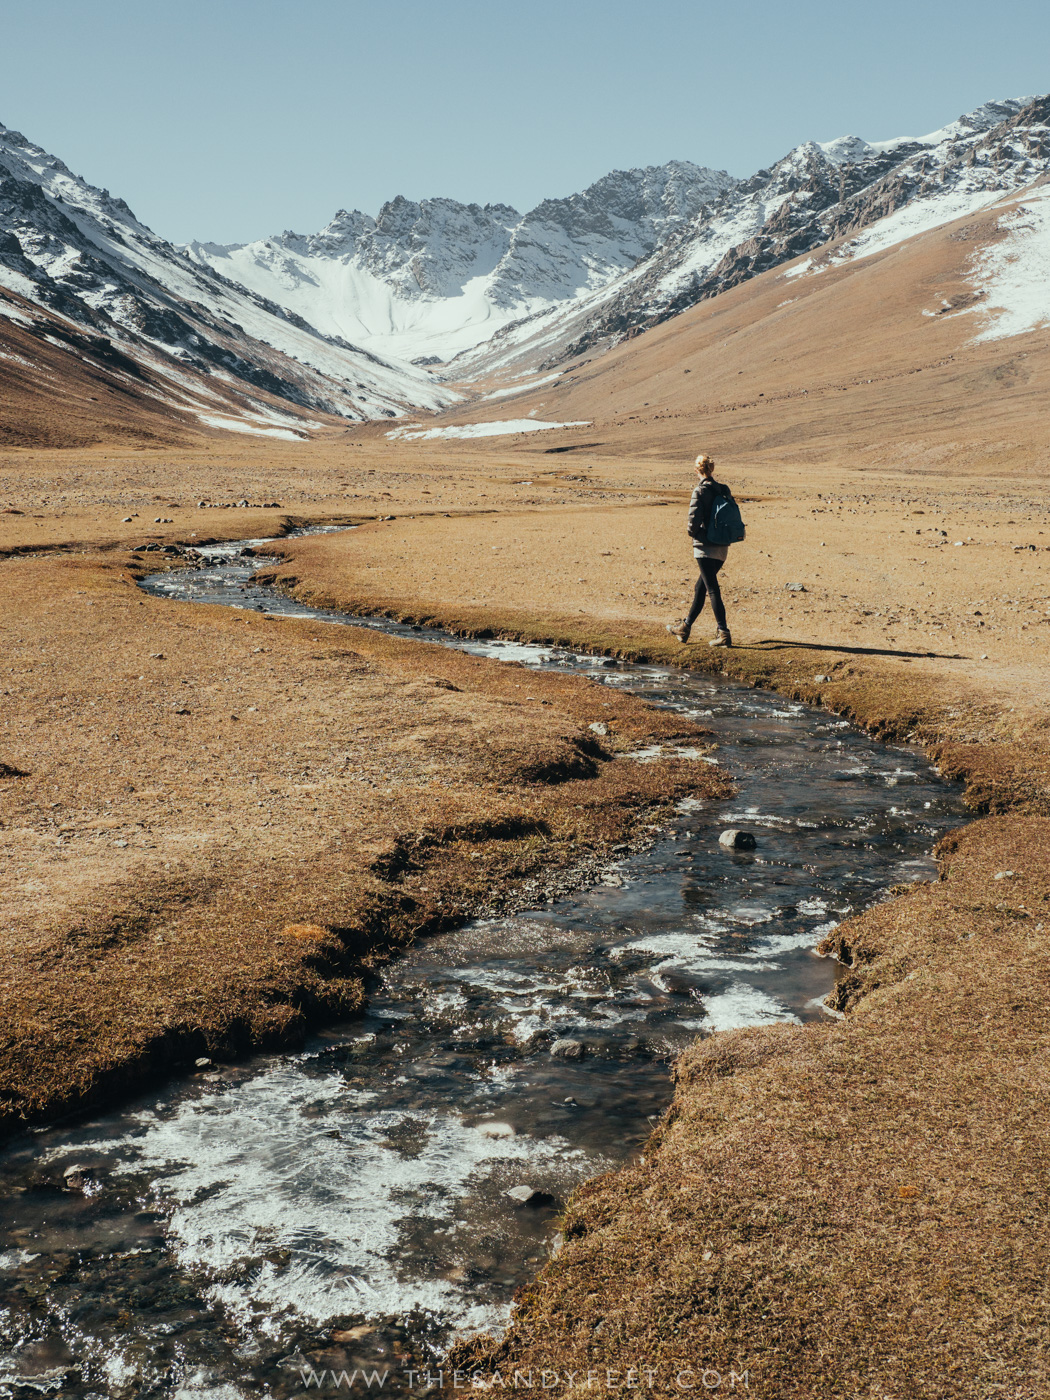 Hiking Essentials: Your Complete Hiking Packing List for A Successful Day Hike